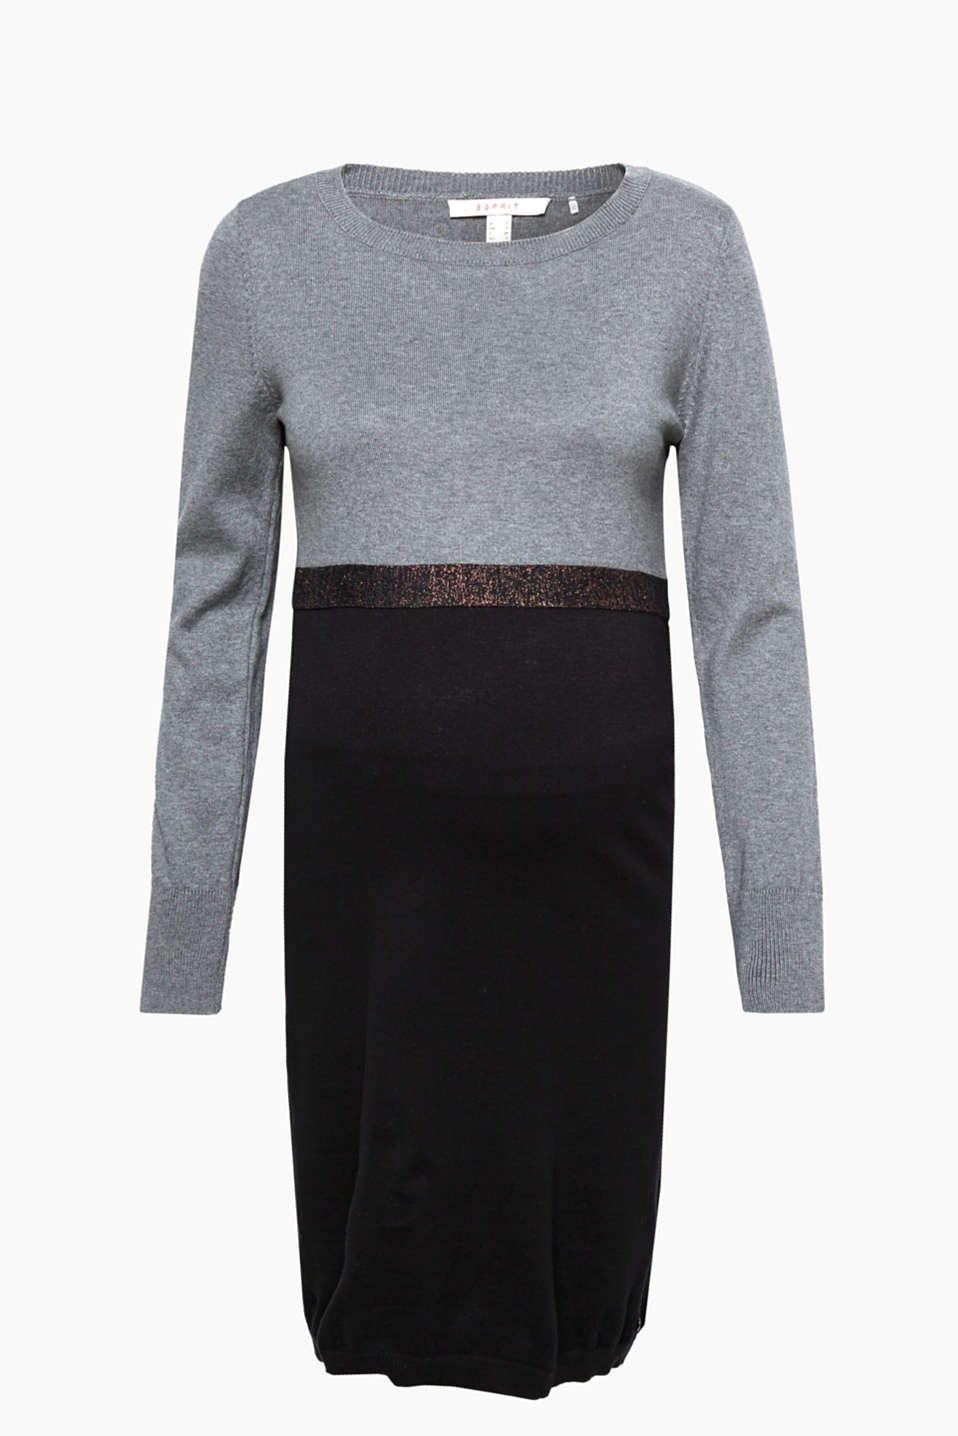 Casual, chic colour blocking: Fine knit dress in pure cotton with a lurex trim